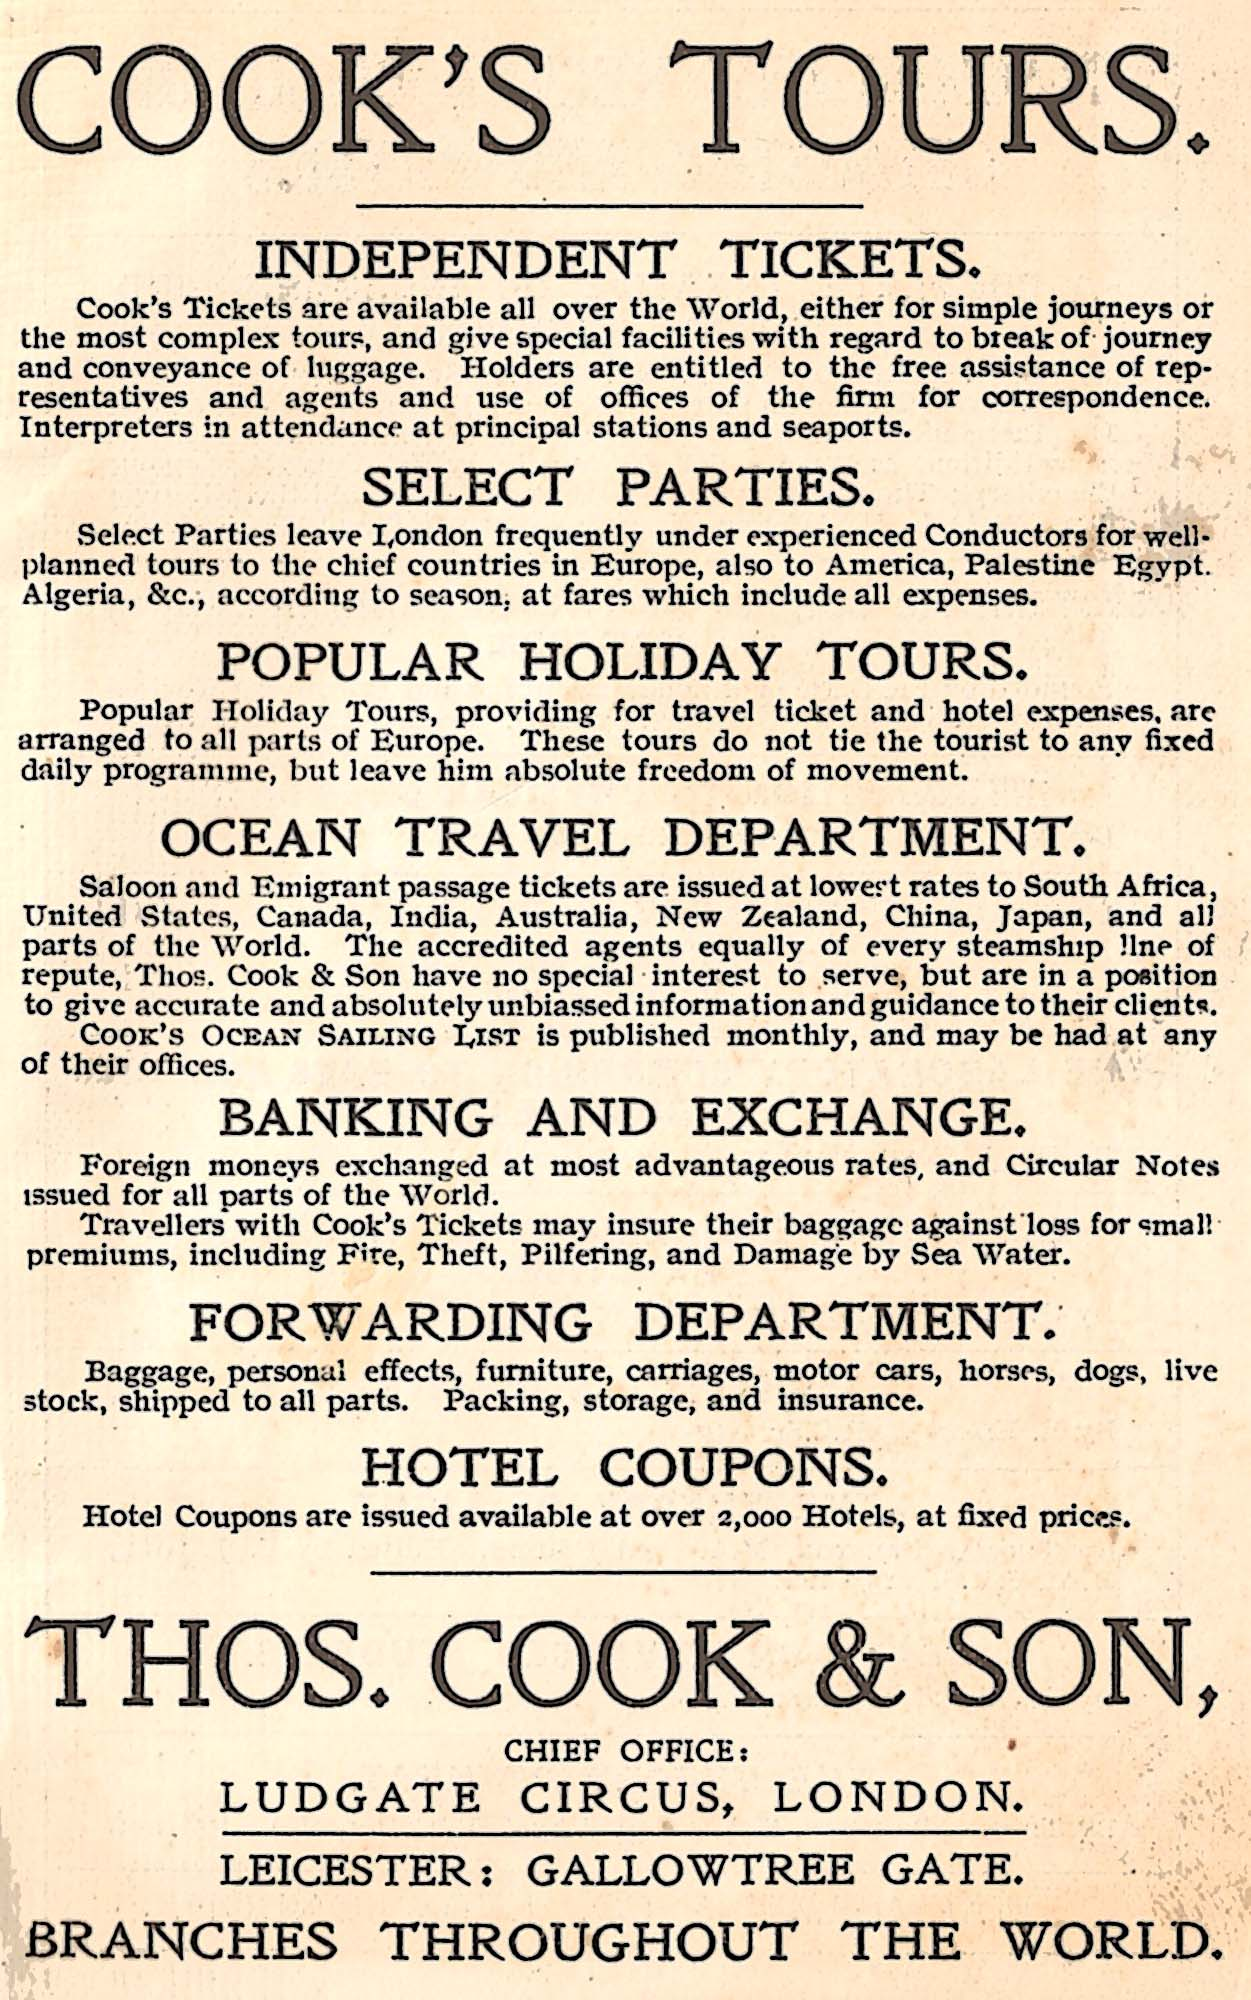 A Cook's Tours advertisement from 1907 -